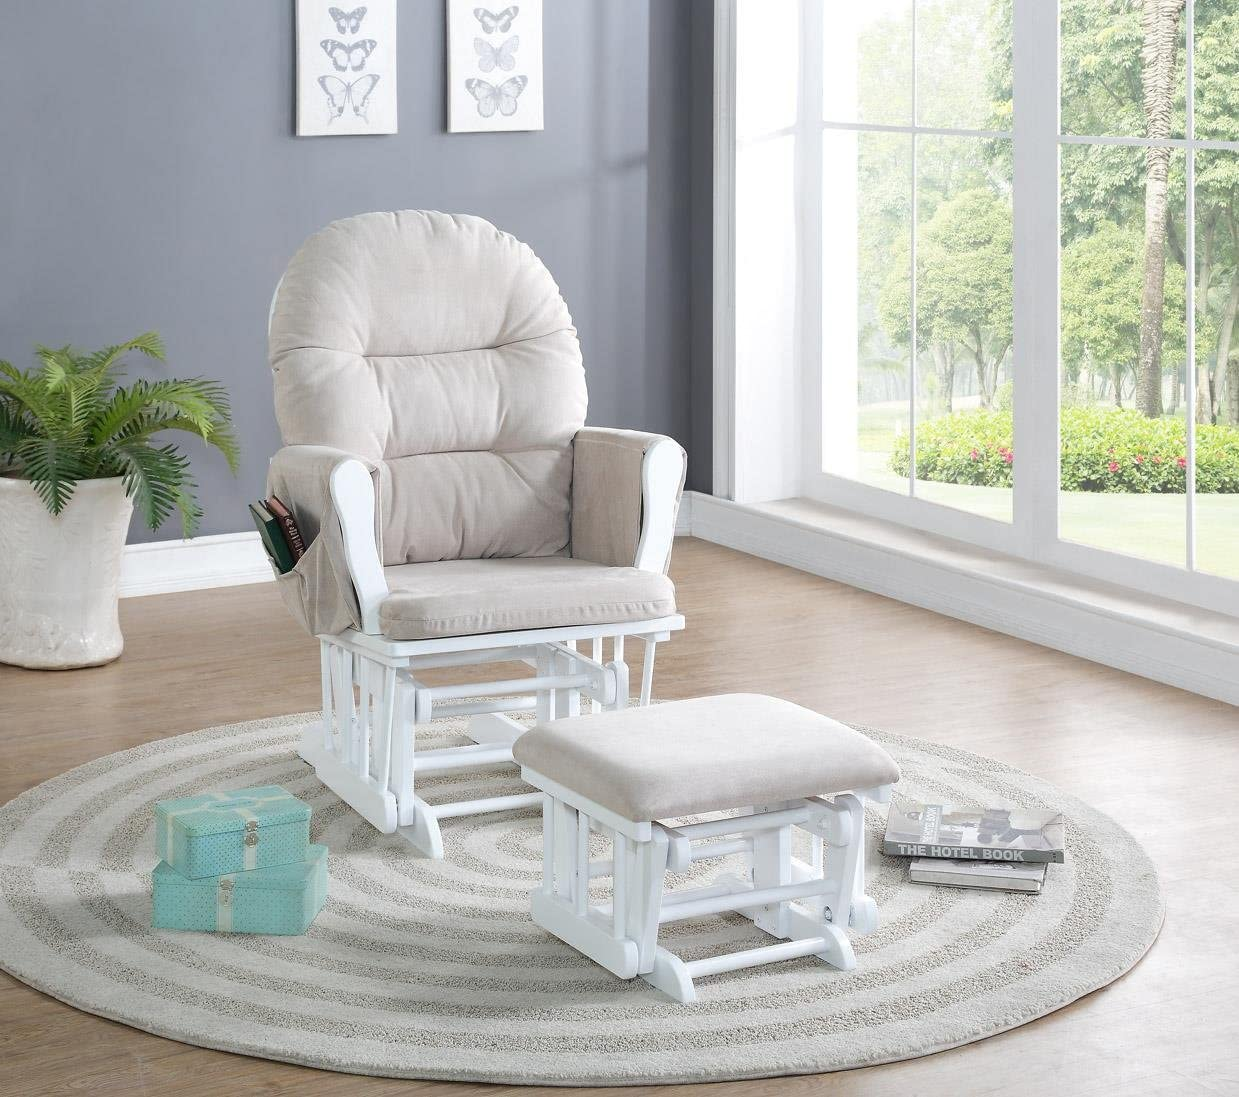 with Cushion in Cream and Finish in Espresso Naomi Home Brisbane Nursing maternity Glider Chair /& Ottoman Footstool Set